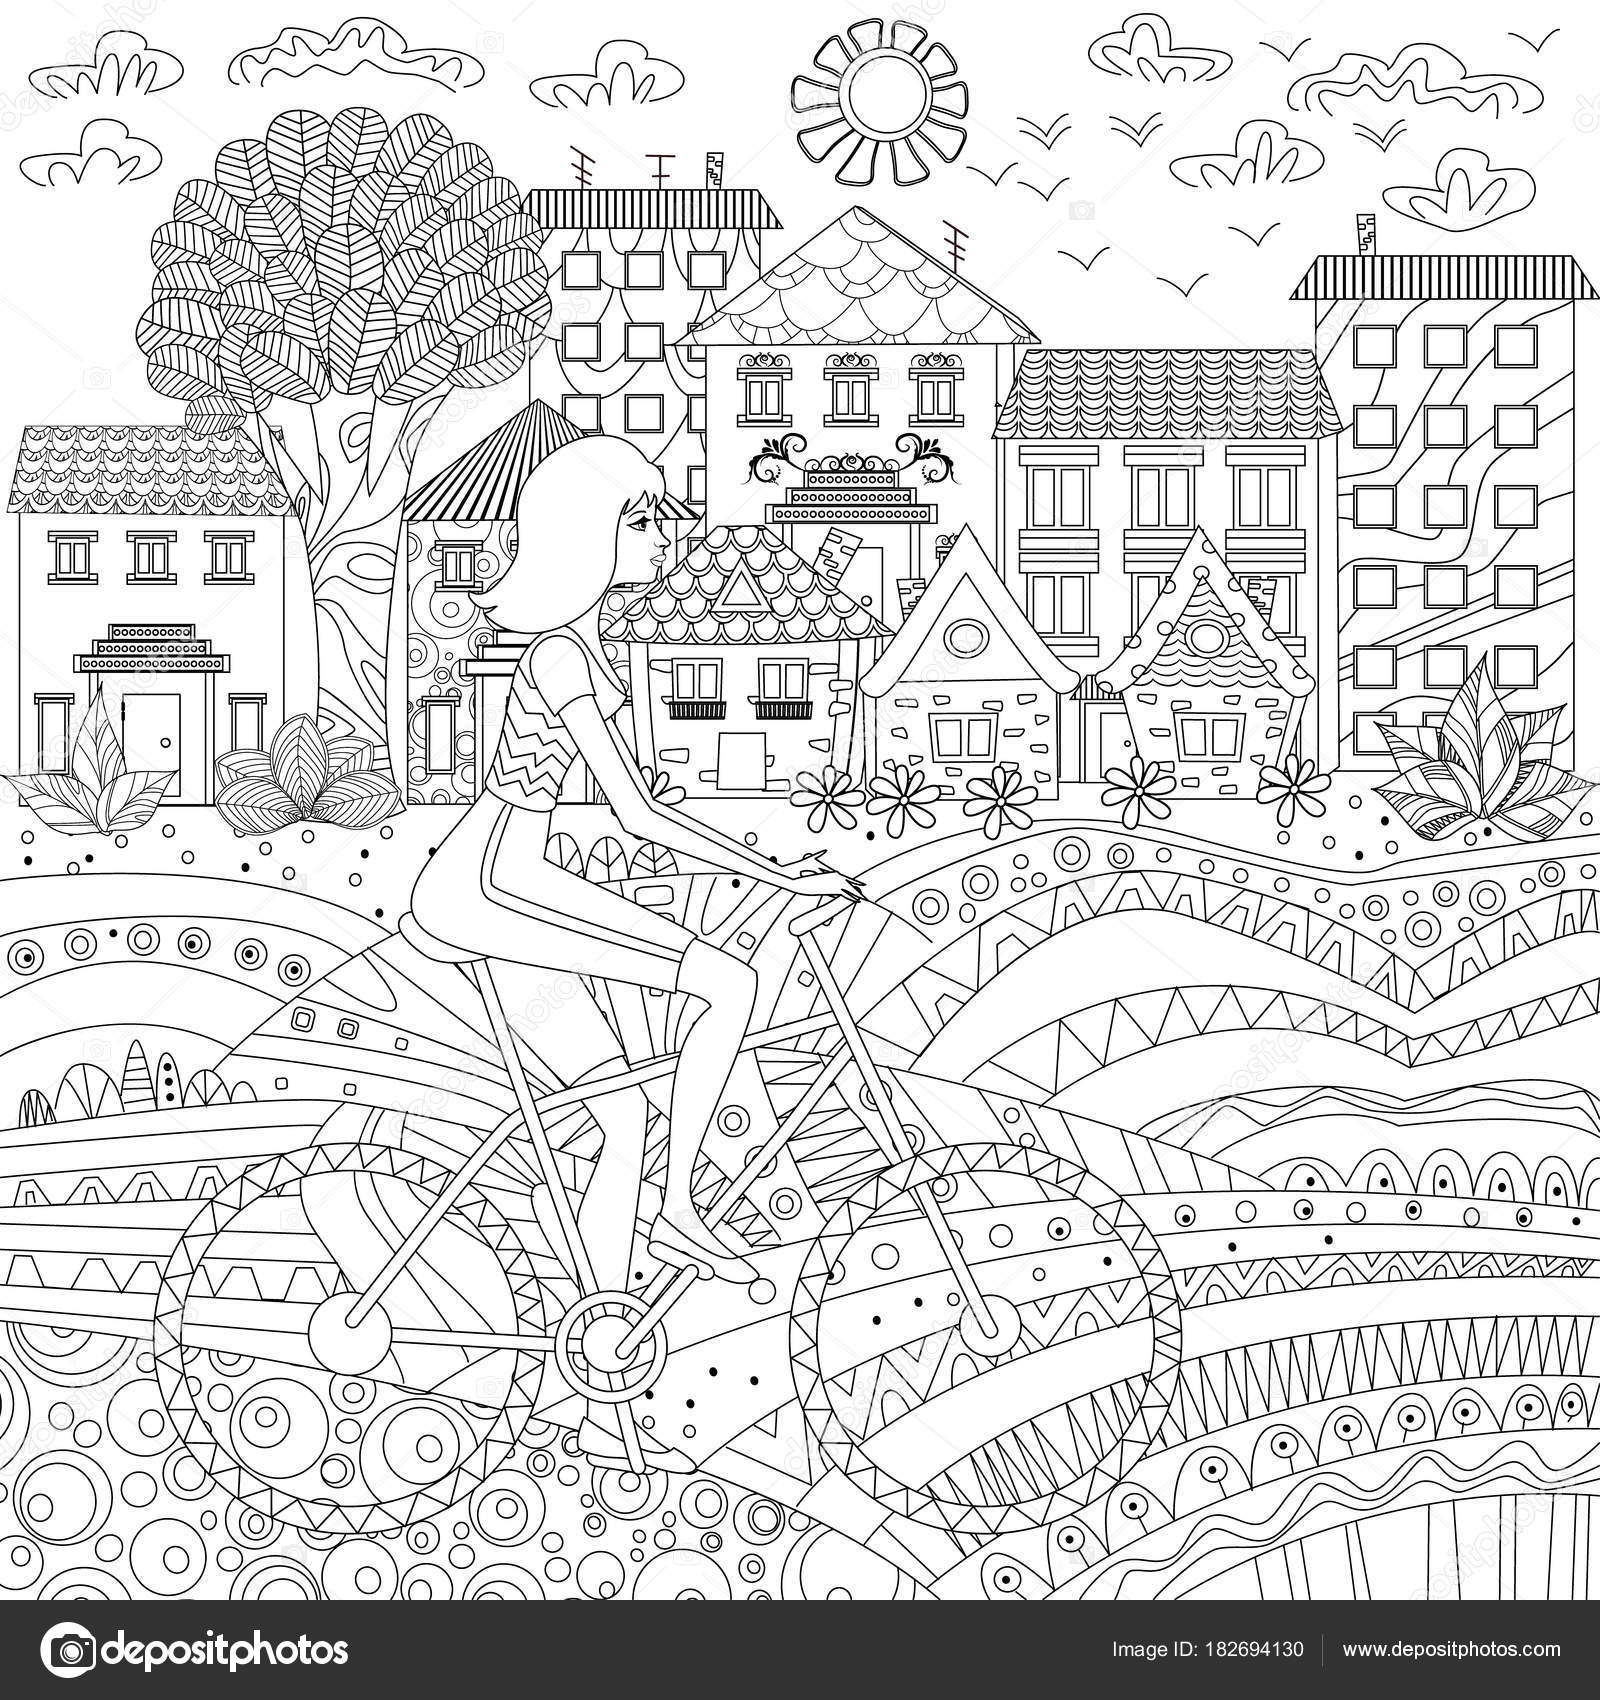 Sporty Girl Bike City Coloring Book Vector Illustration Stock